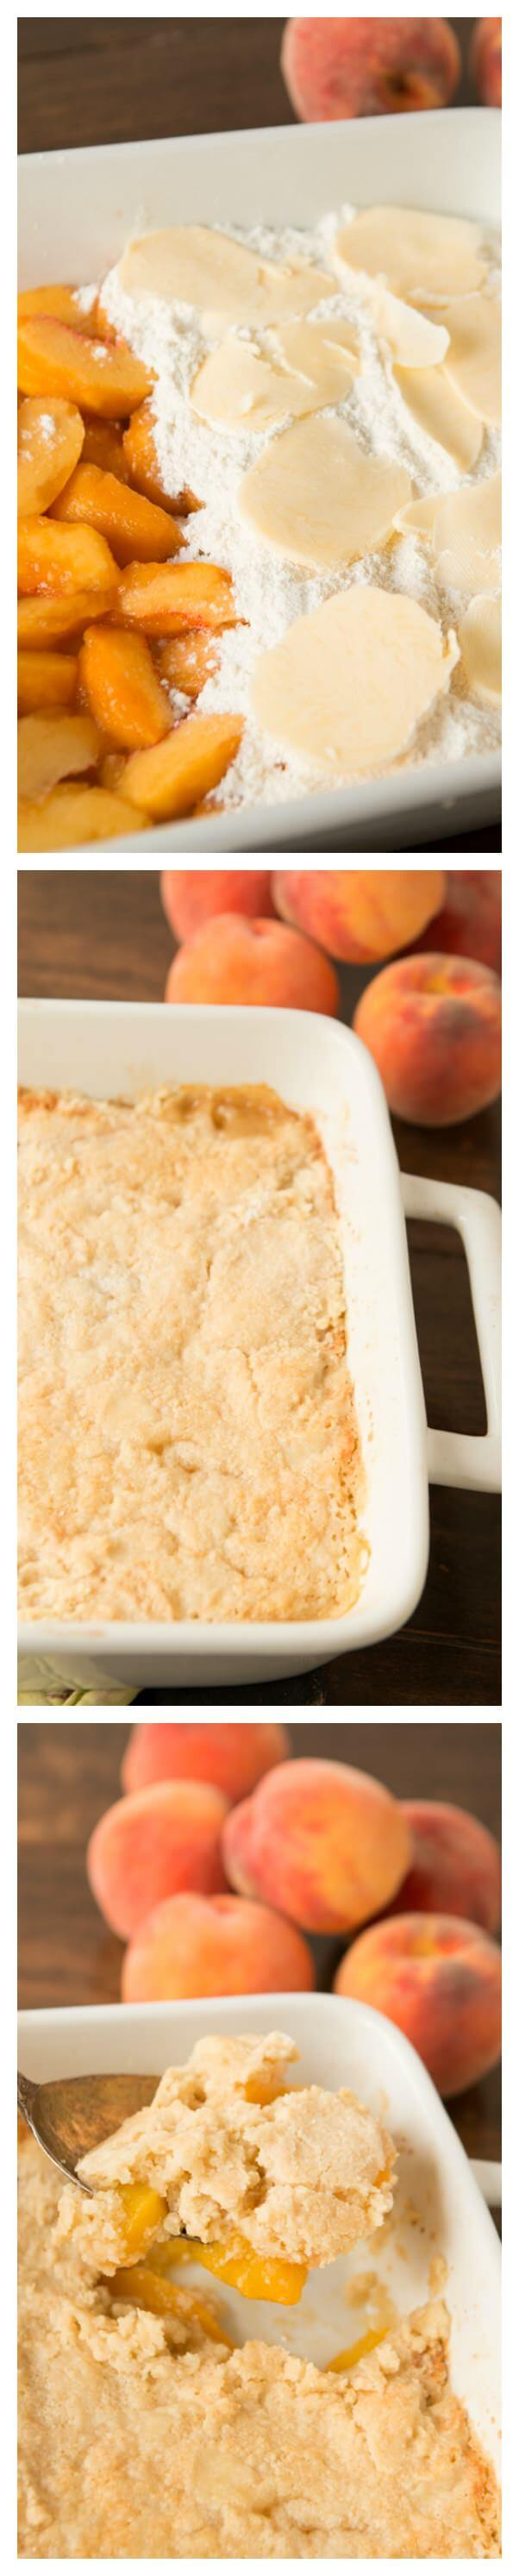 Easy Apple Cobbler With Cake Mix